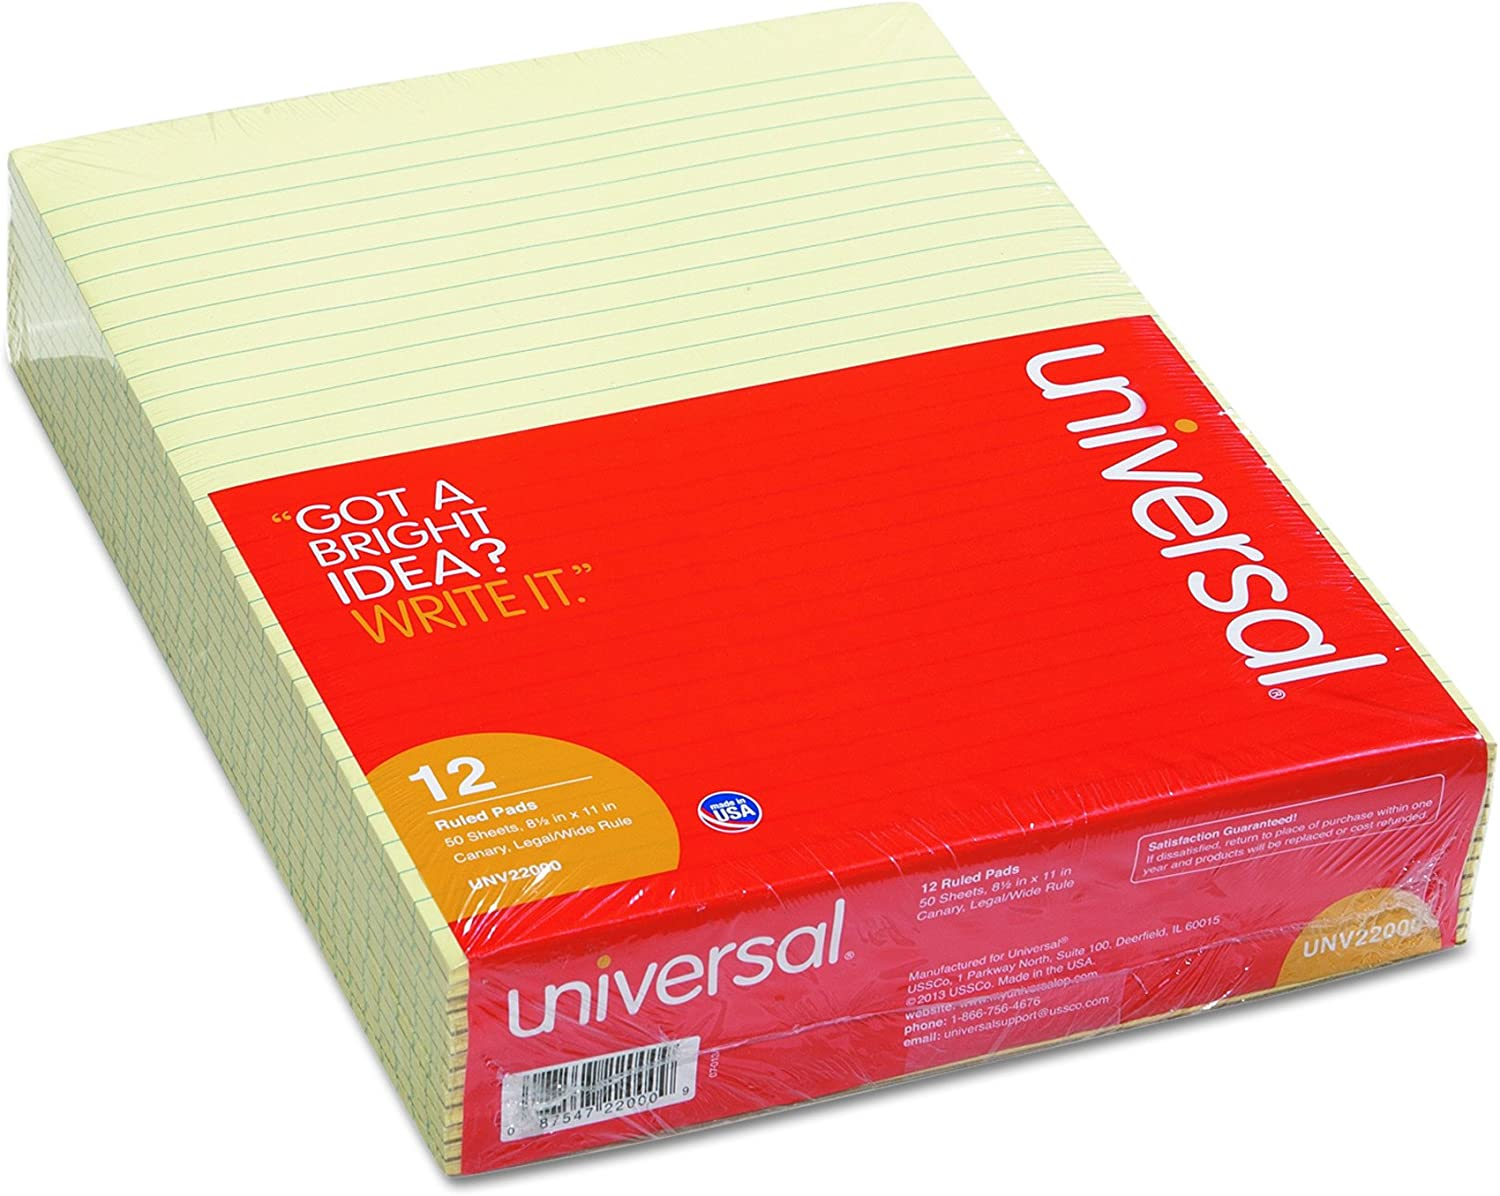 Universal 22000 Glue Top Writing Legal Pads Letter Canar favorite Rule Sale item